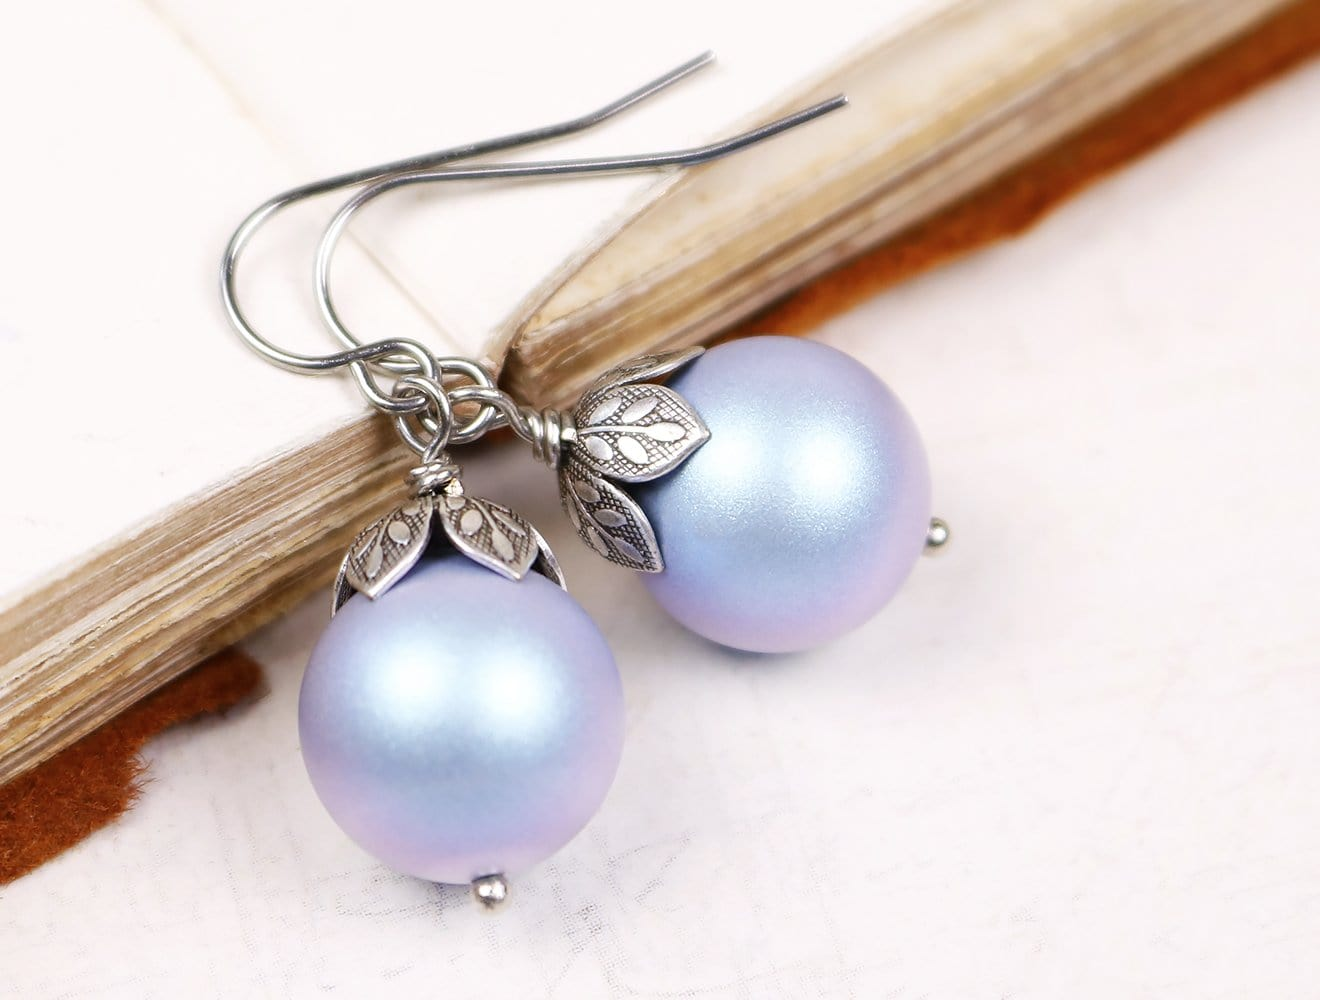 e1e199136 ... Aquitaine Pearl Drop Earrings in Iridescent Light Blue Pearl - Antiqued  Silver - by dosha of ...